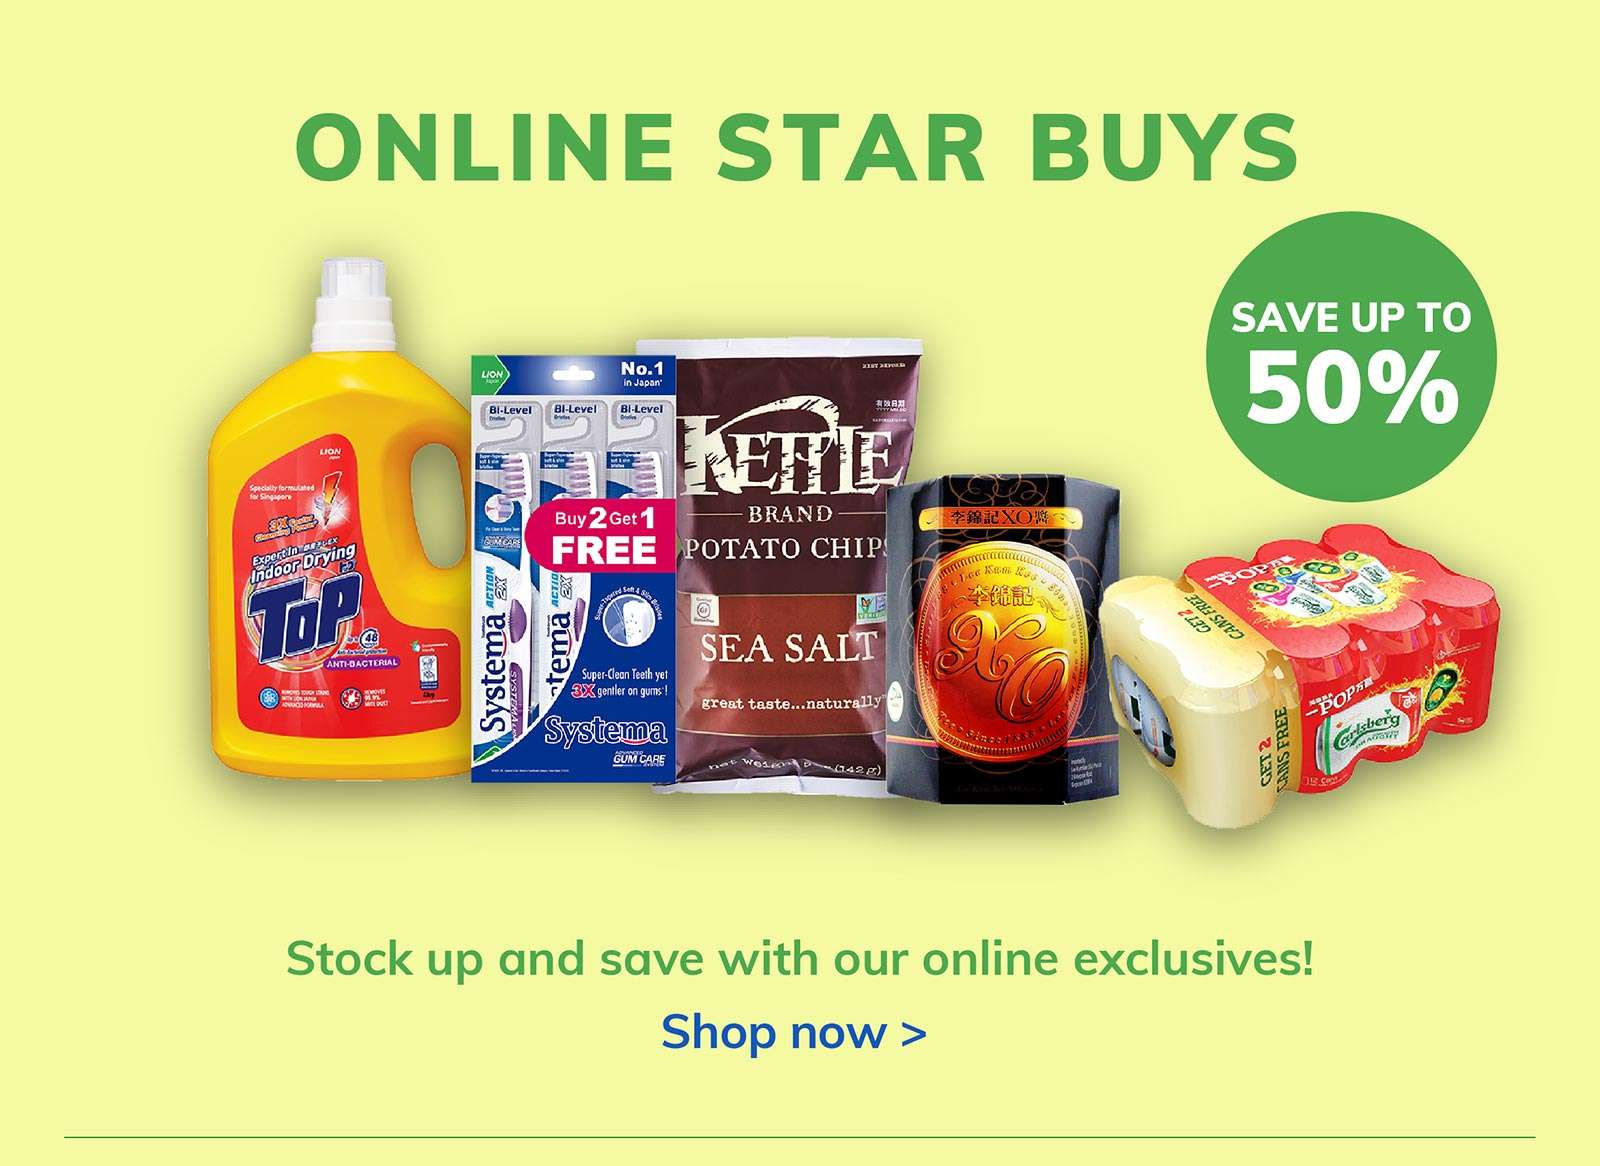 Online Star Buys